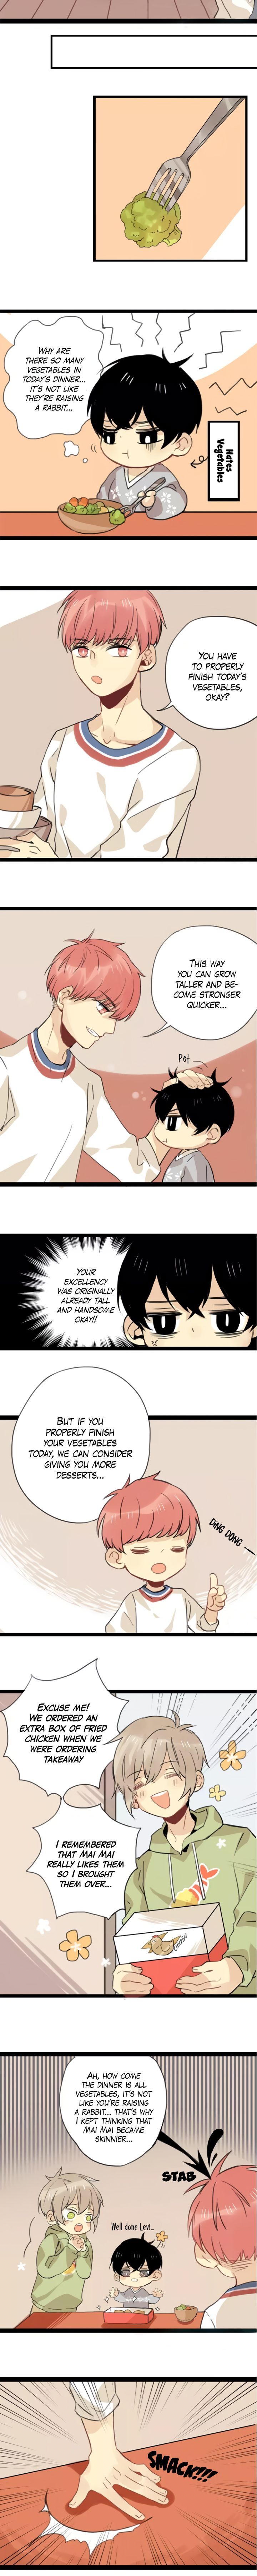 Demon King, your big brother wants you home for dinner. - chapter 20 - #2